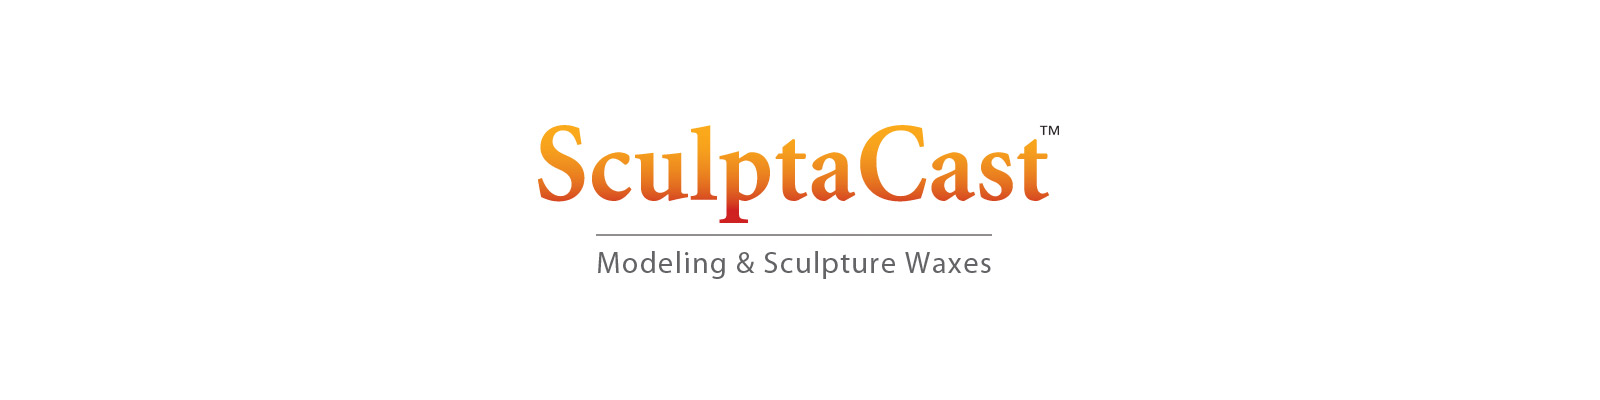 Precizioned | Jewelry, Sculpture and specialist casting waxes